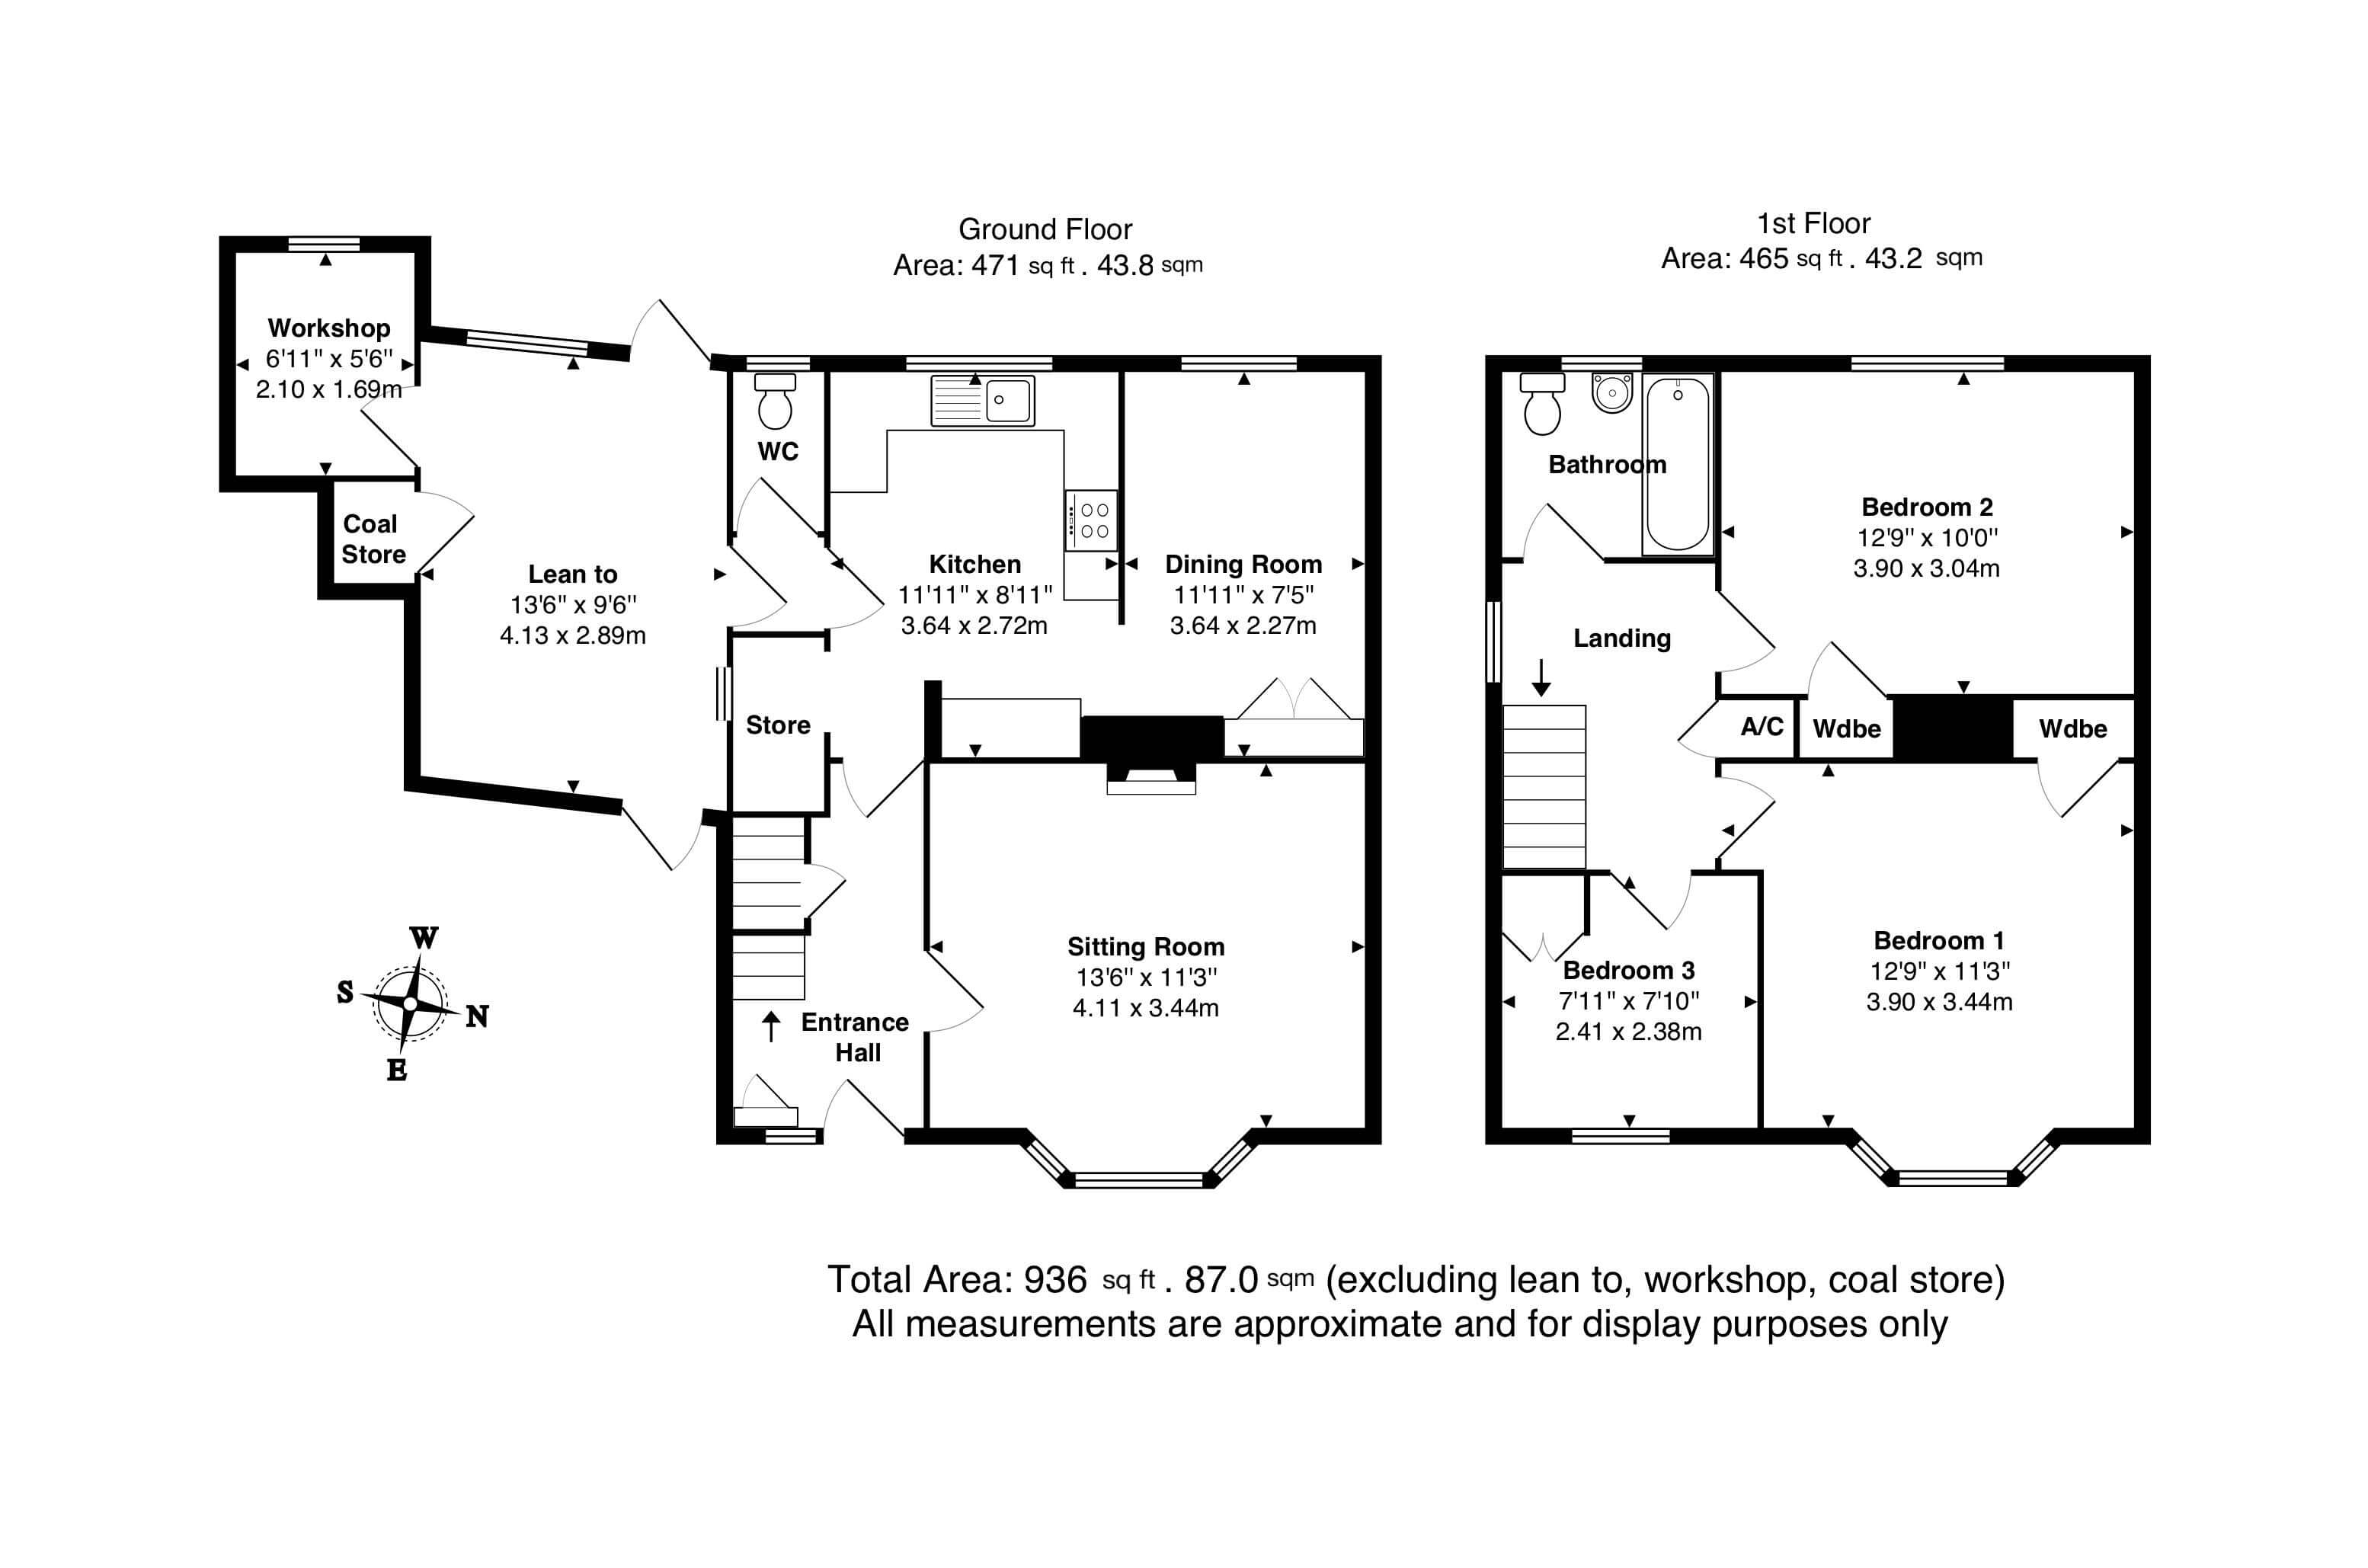 David Cosby Chartered Surveyors & Estate Agents - PINEWOOD DRIVE, BLETCHLEY - Floor Plans